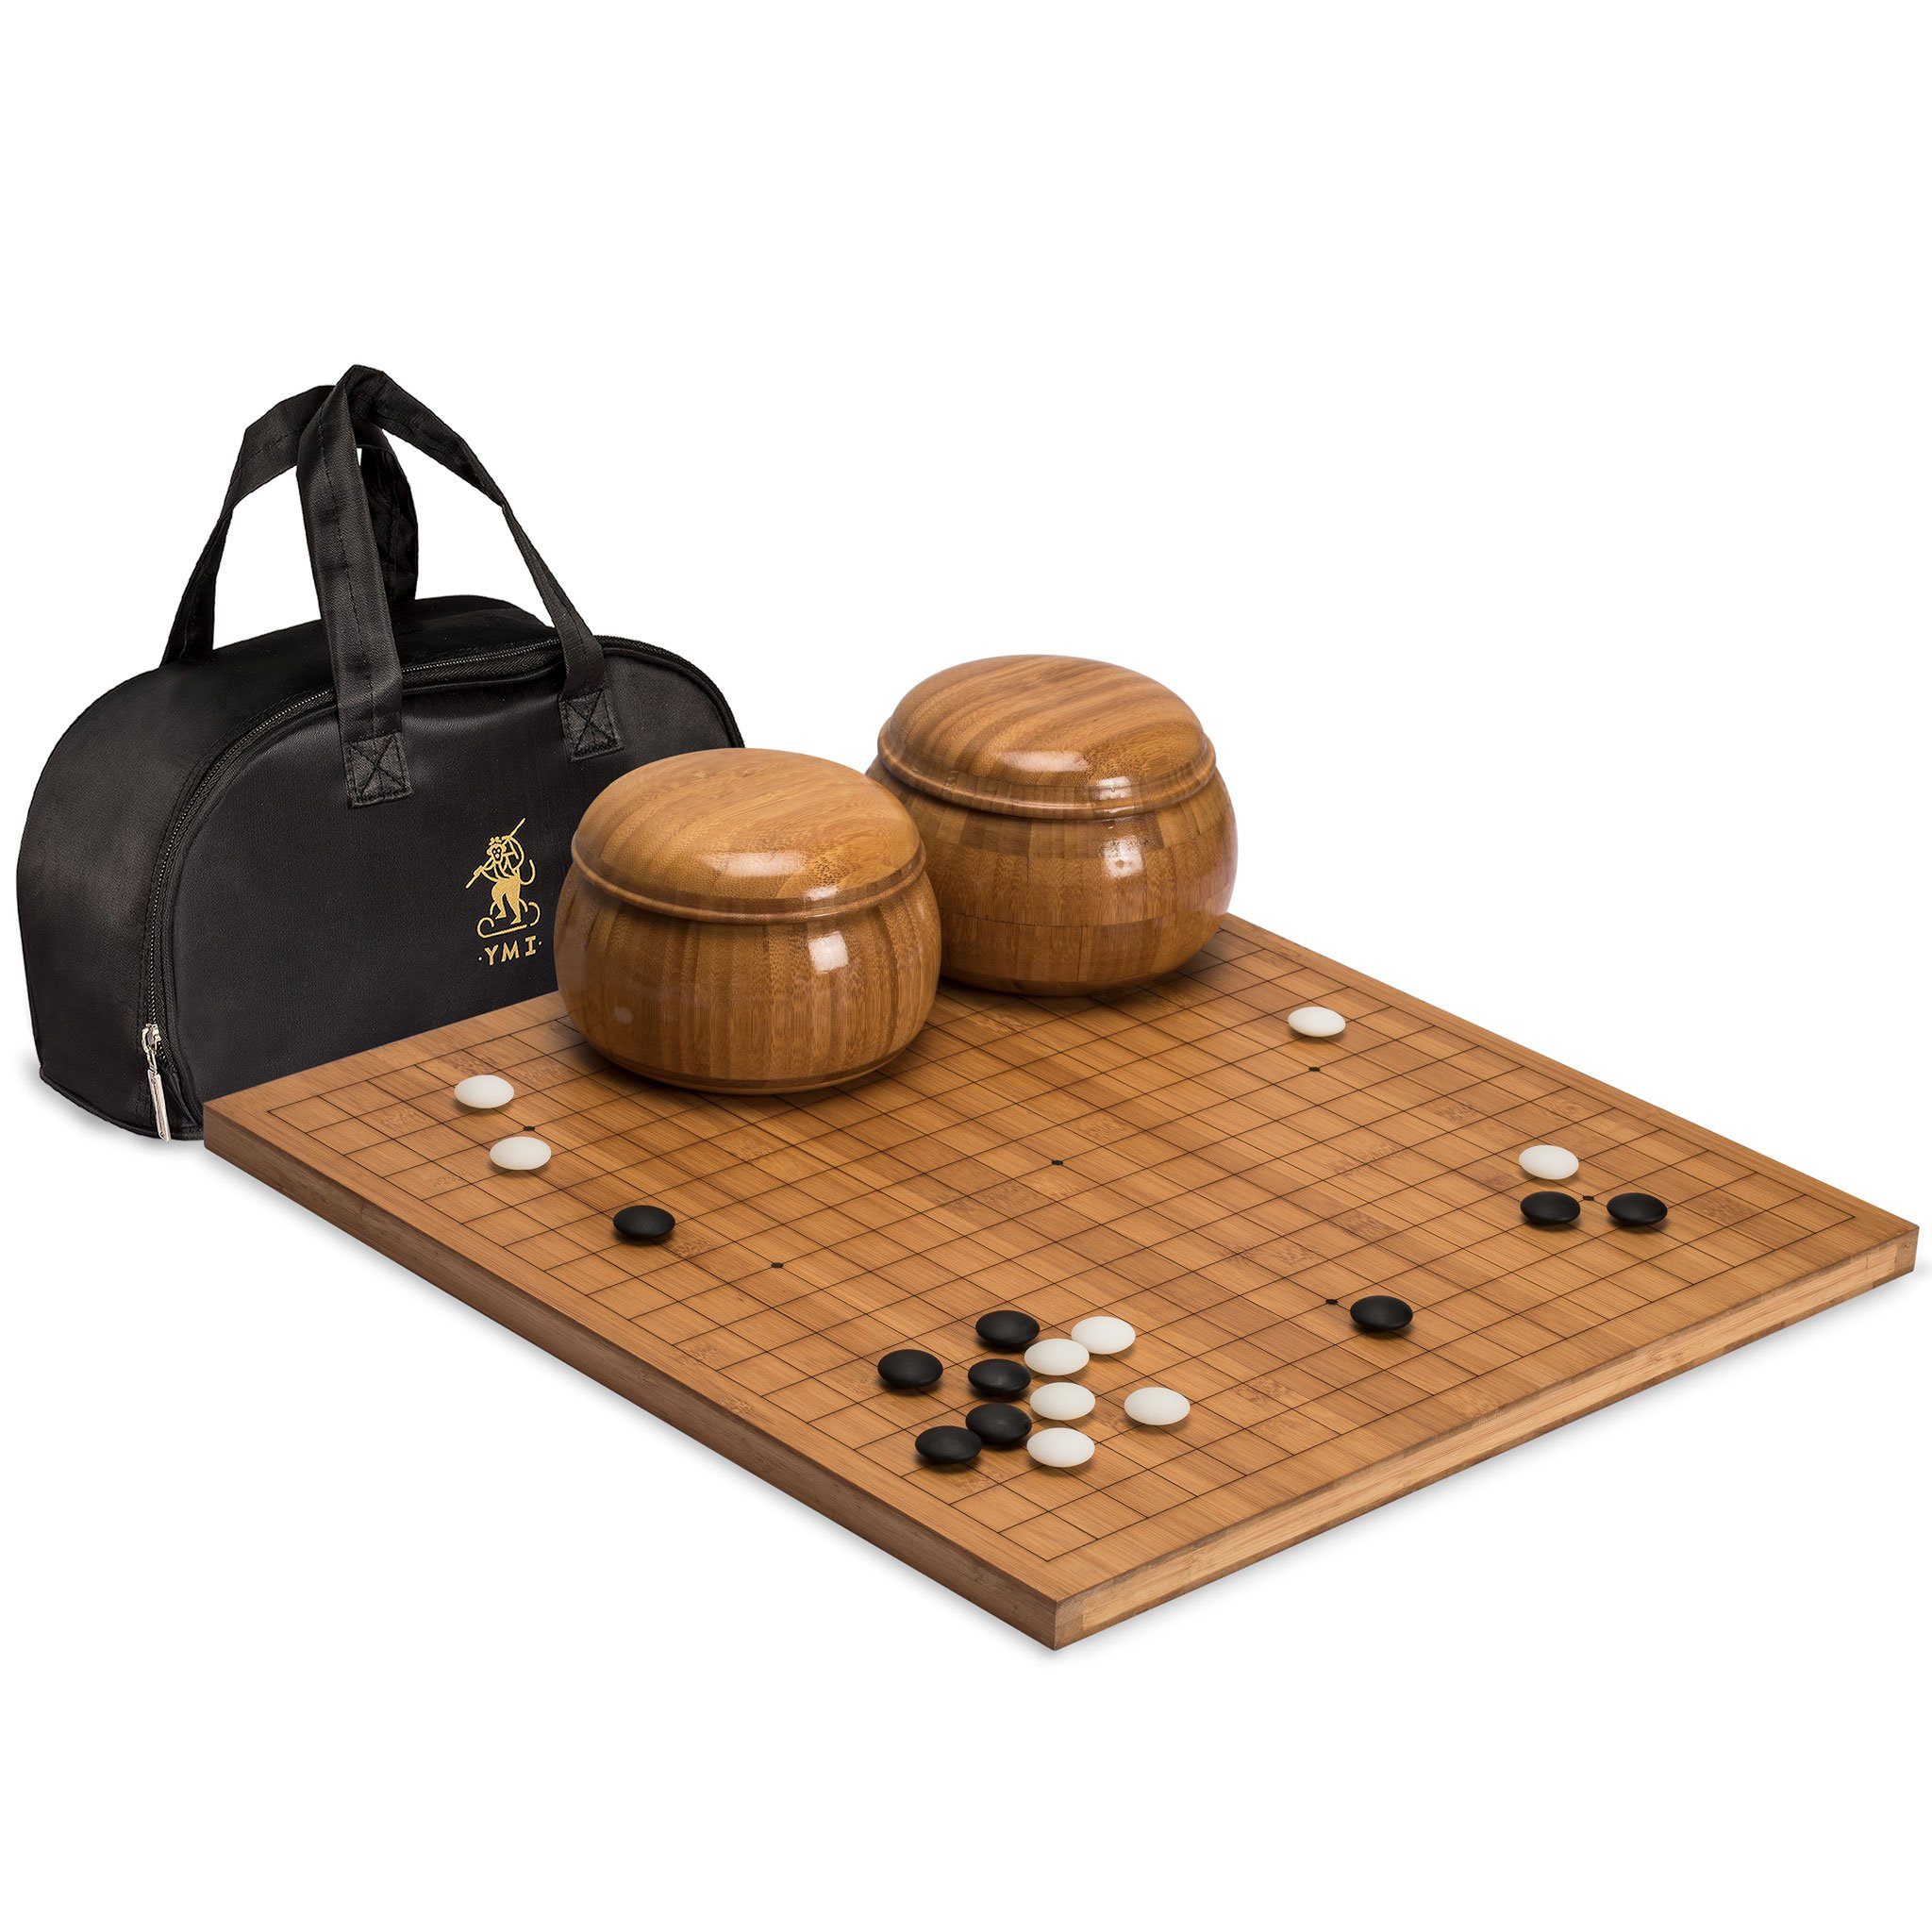 Go Game Set with Etched Bamboo Go Board (0.8 Inch Thick), Double Convex Yunzi Stones (Size 33) and Bamboo Bowls